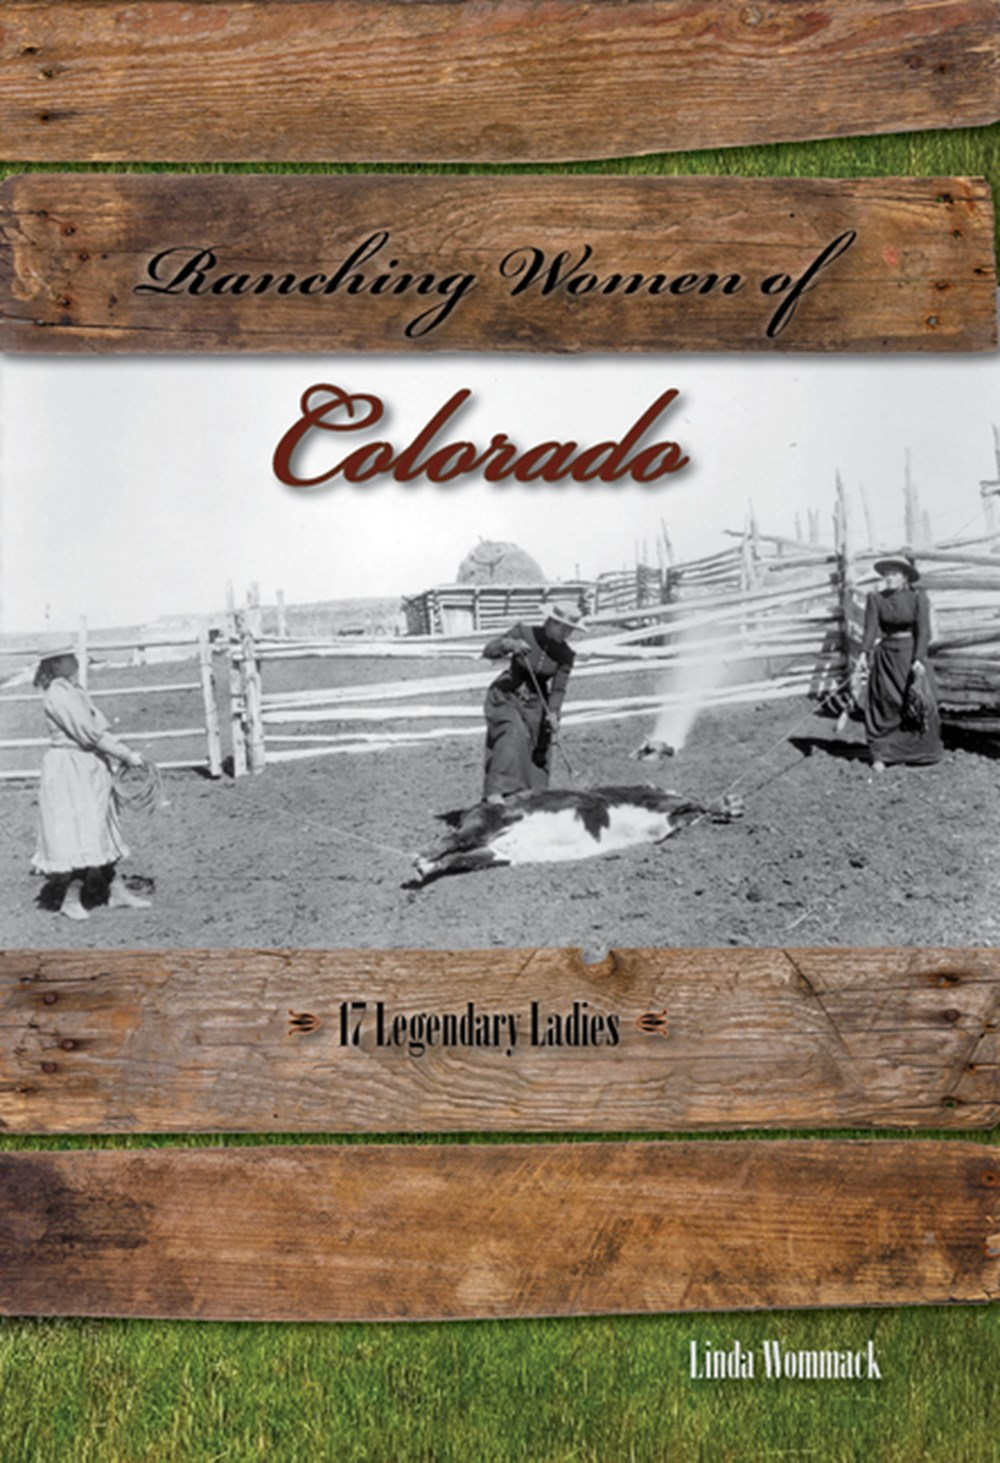 Ranching Women of Colorado 17 Legendary Ladies